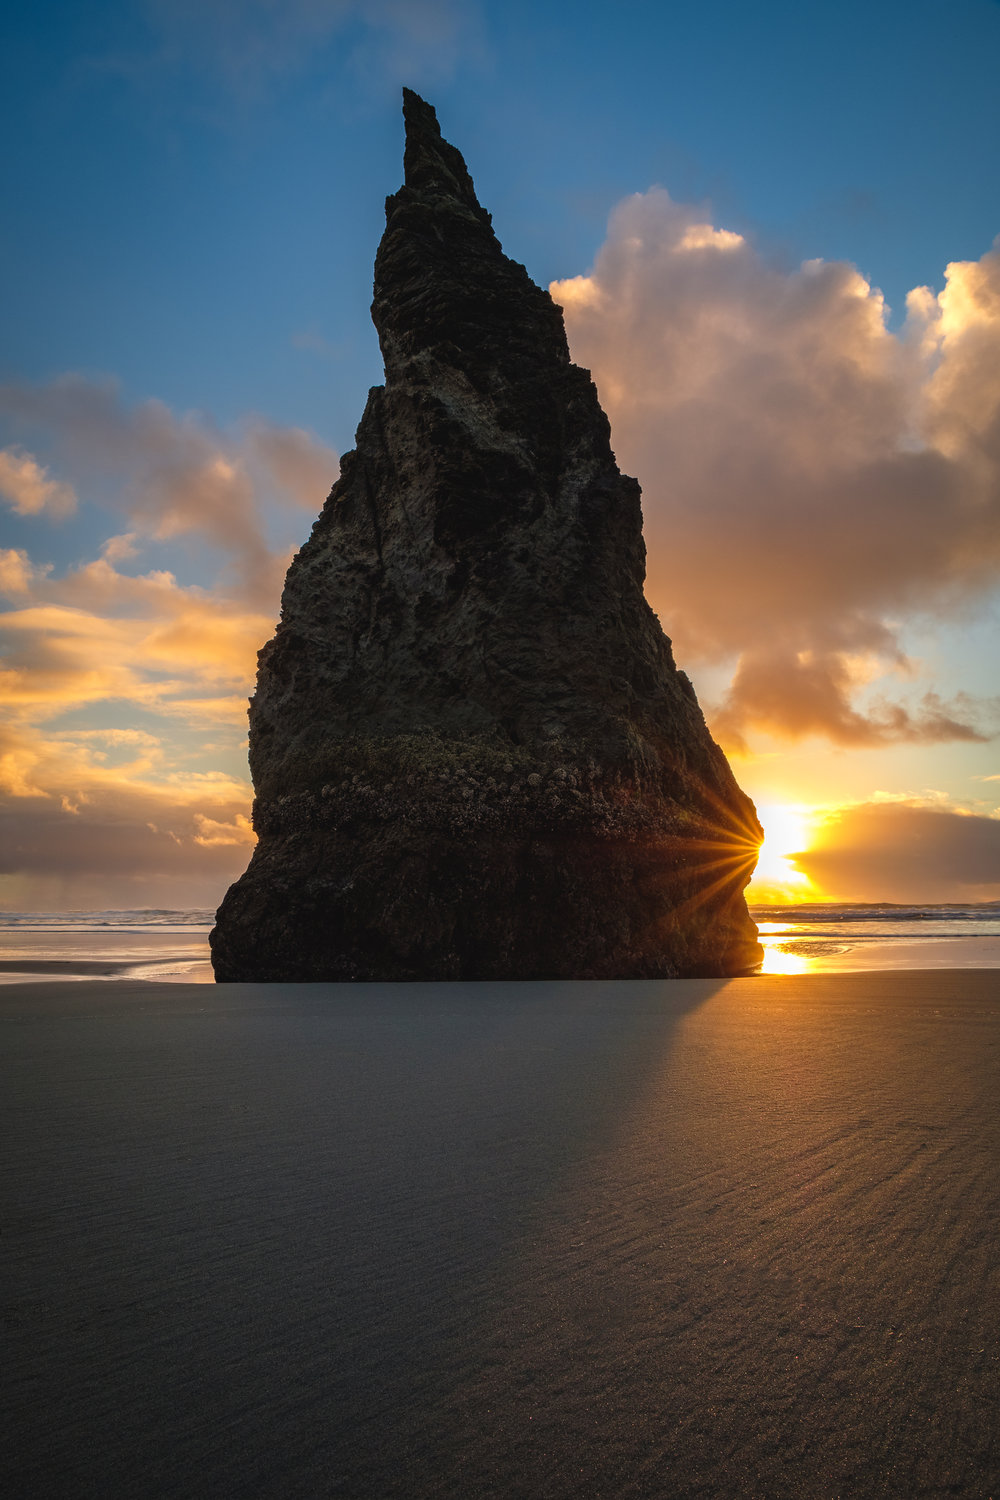 Plenty before me have been to Bandon, Oregon to photograph these iconic sea stacks.